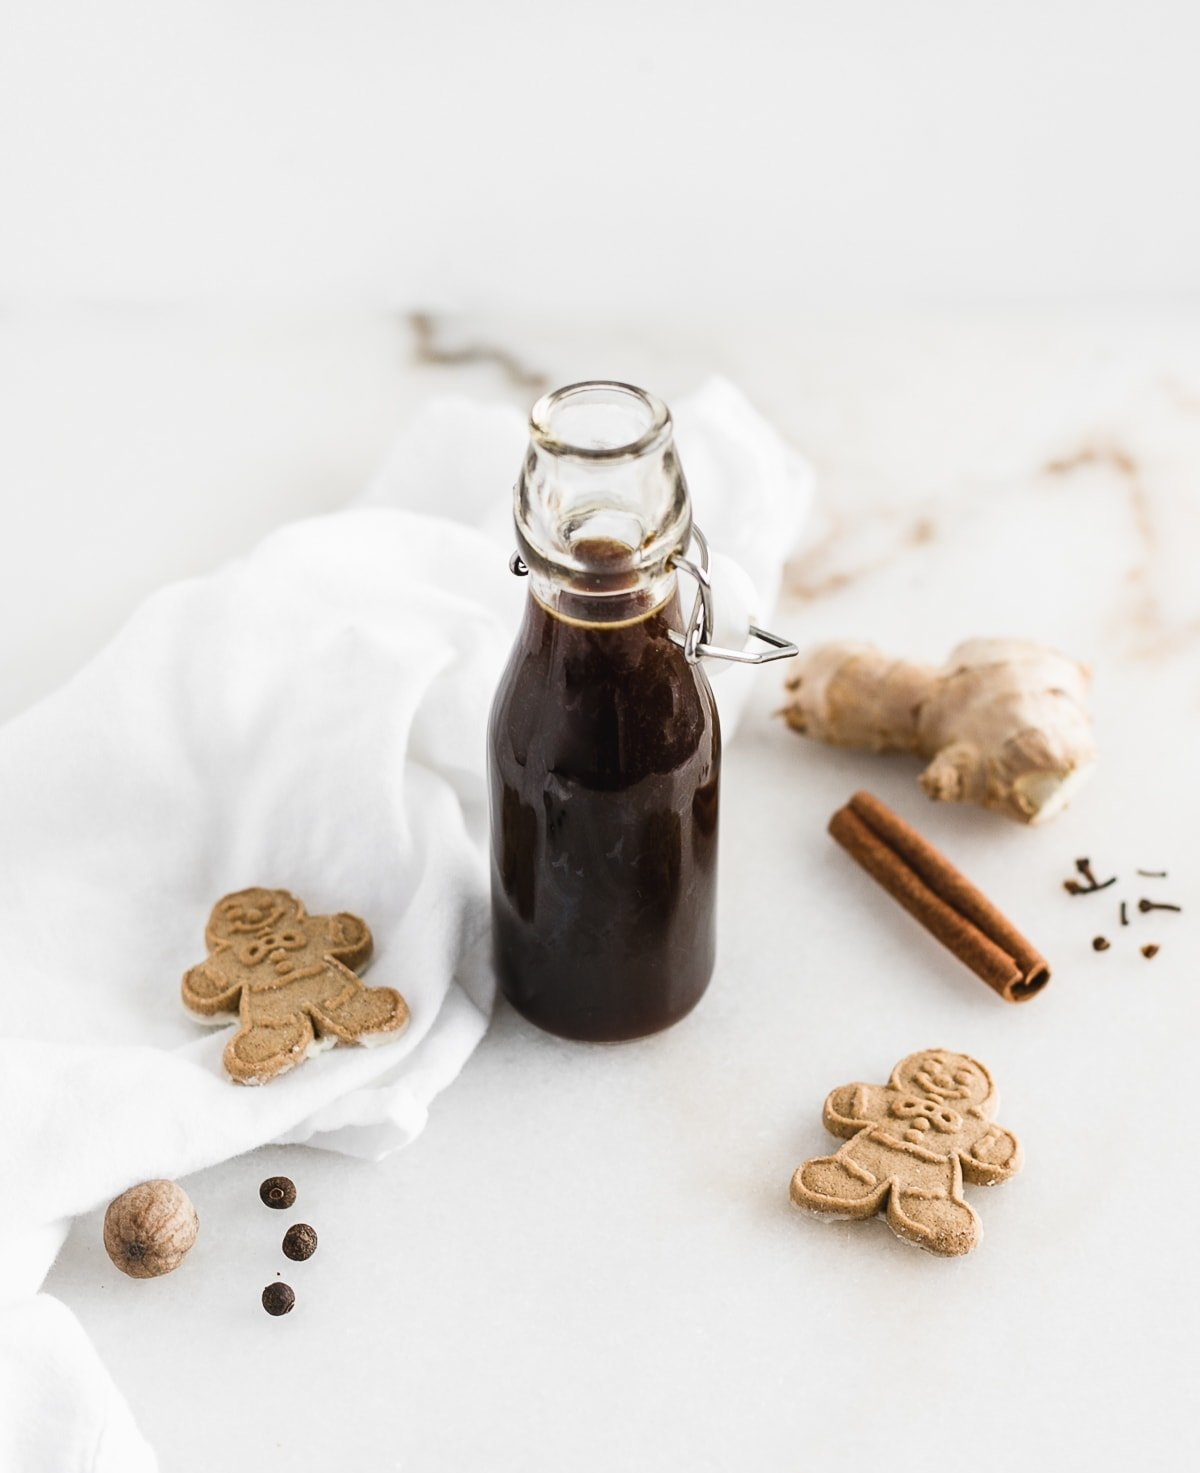 gingerbread syrup recipe